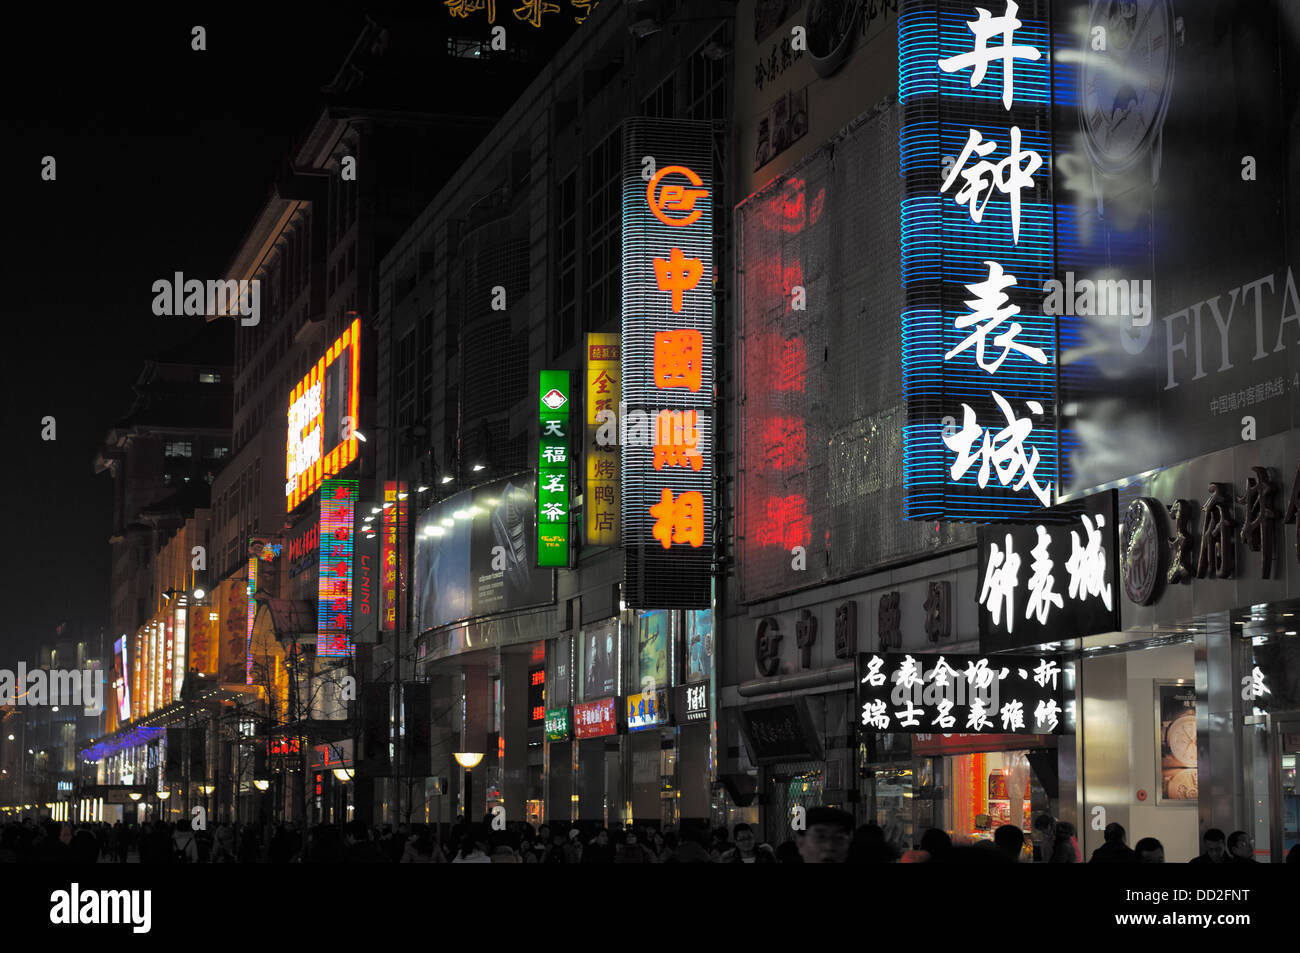 The bustling Wangfujing shopping district, located near the Dongcheng District in  Beijing, China. - Stock Image